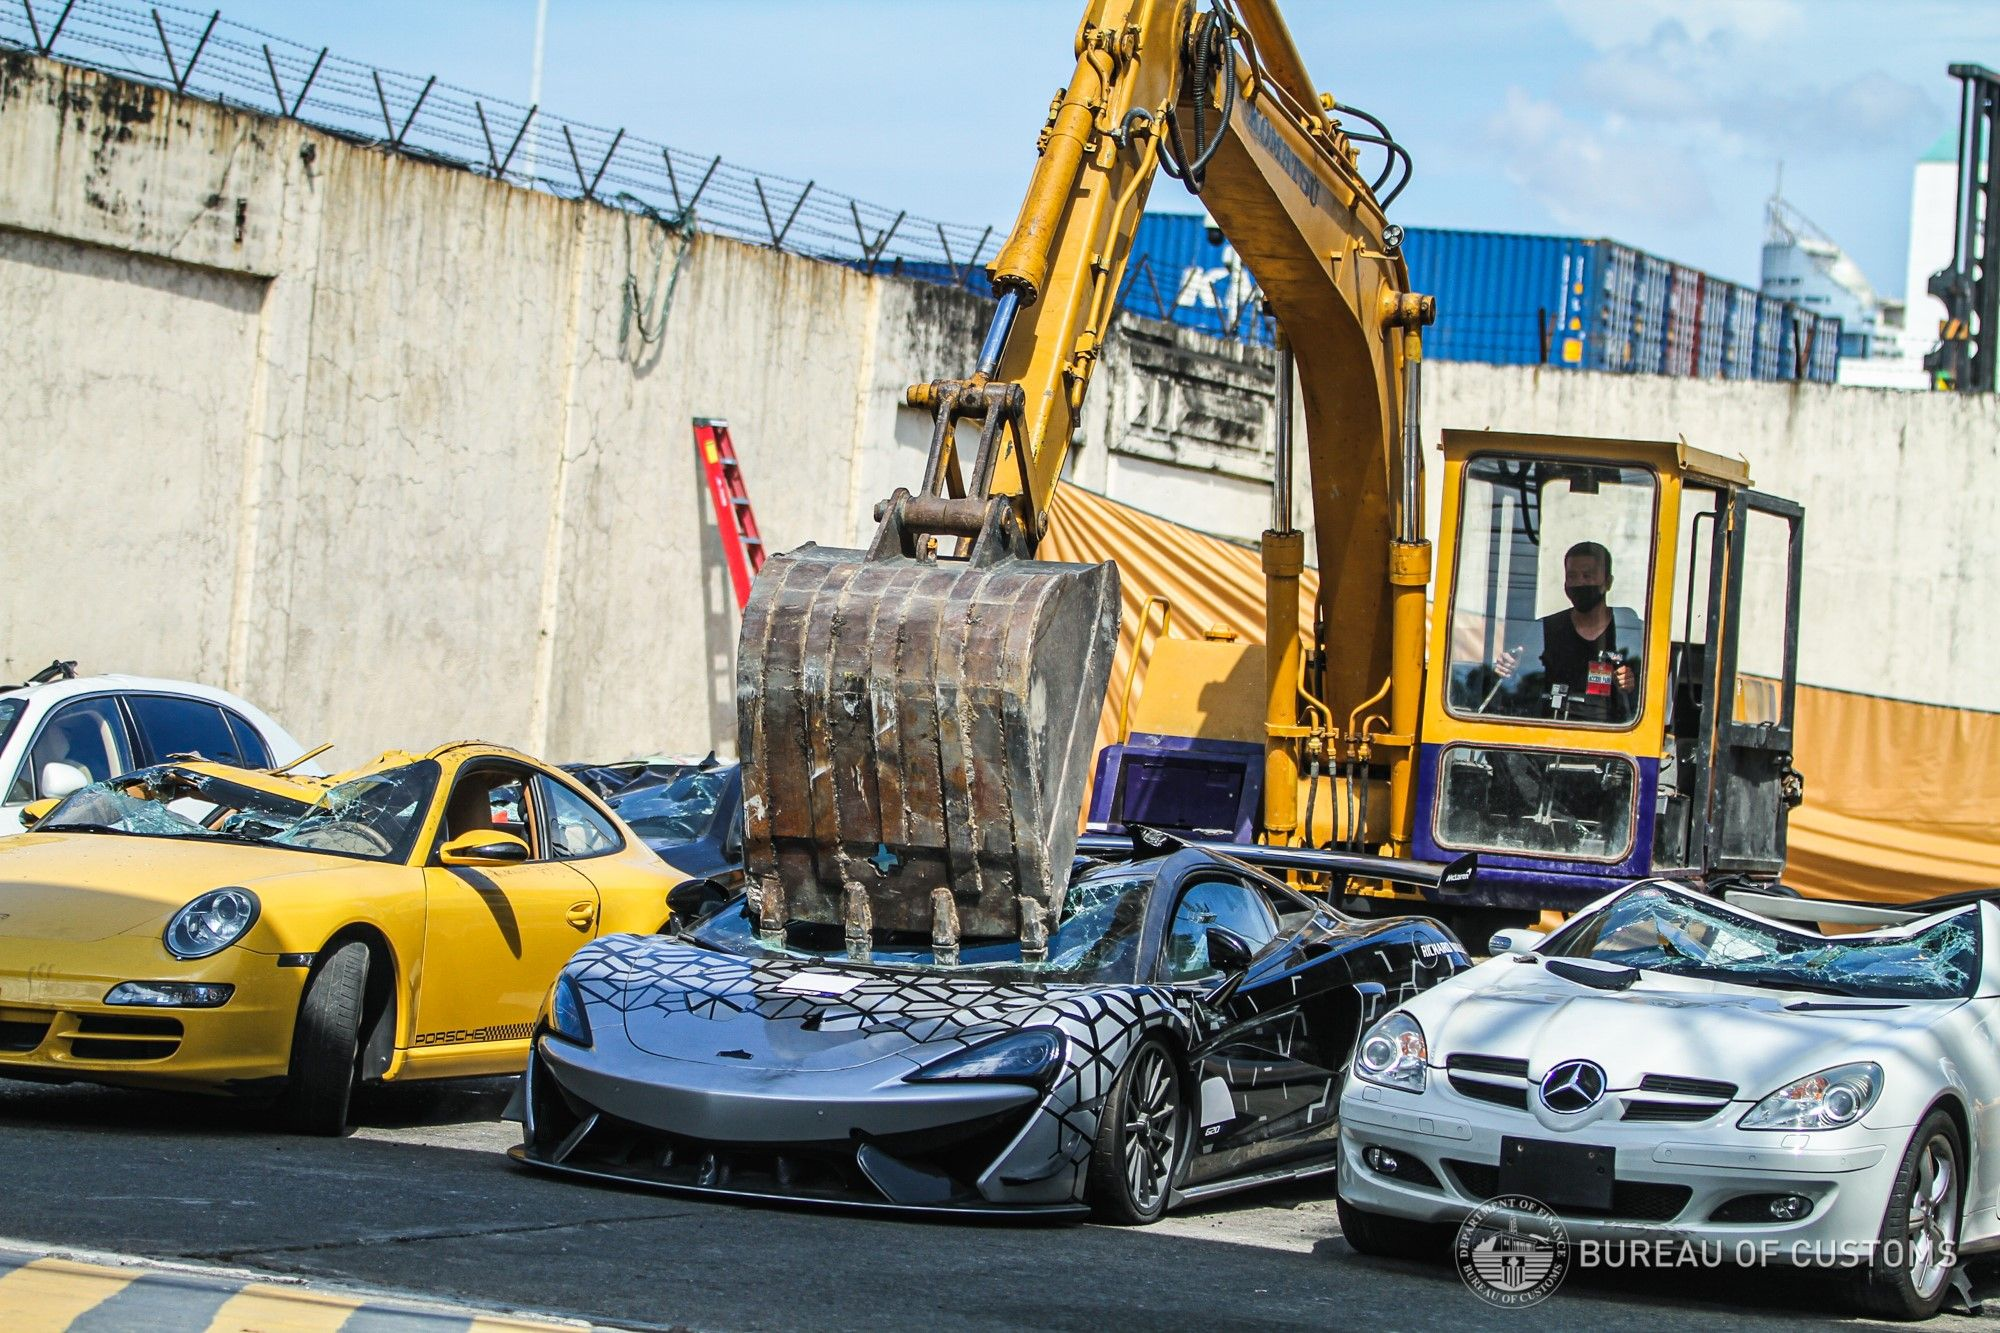 Philippines Customs Crushed A McLaren 620R, $1.2 Million in Cars